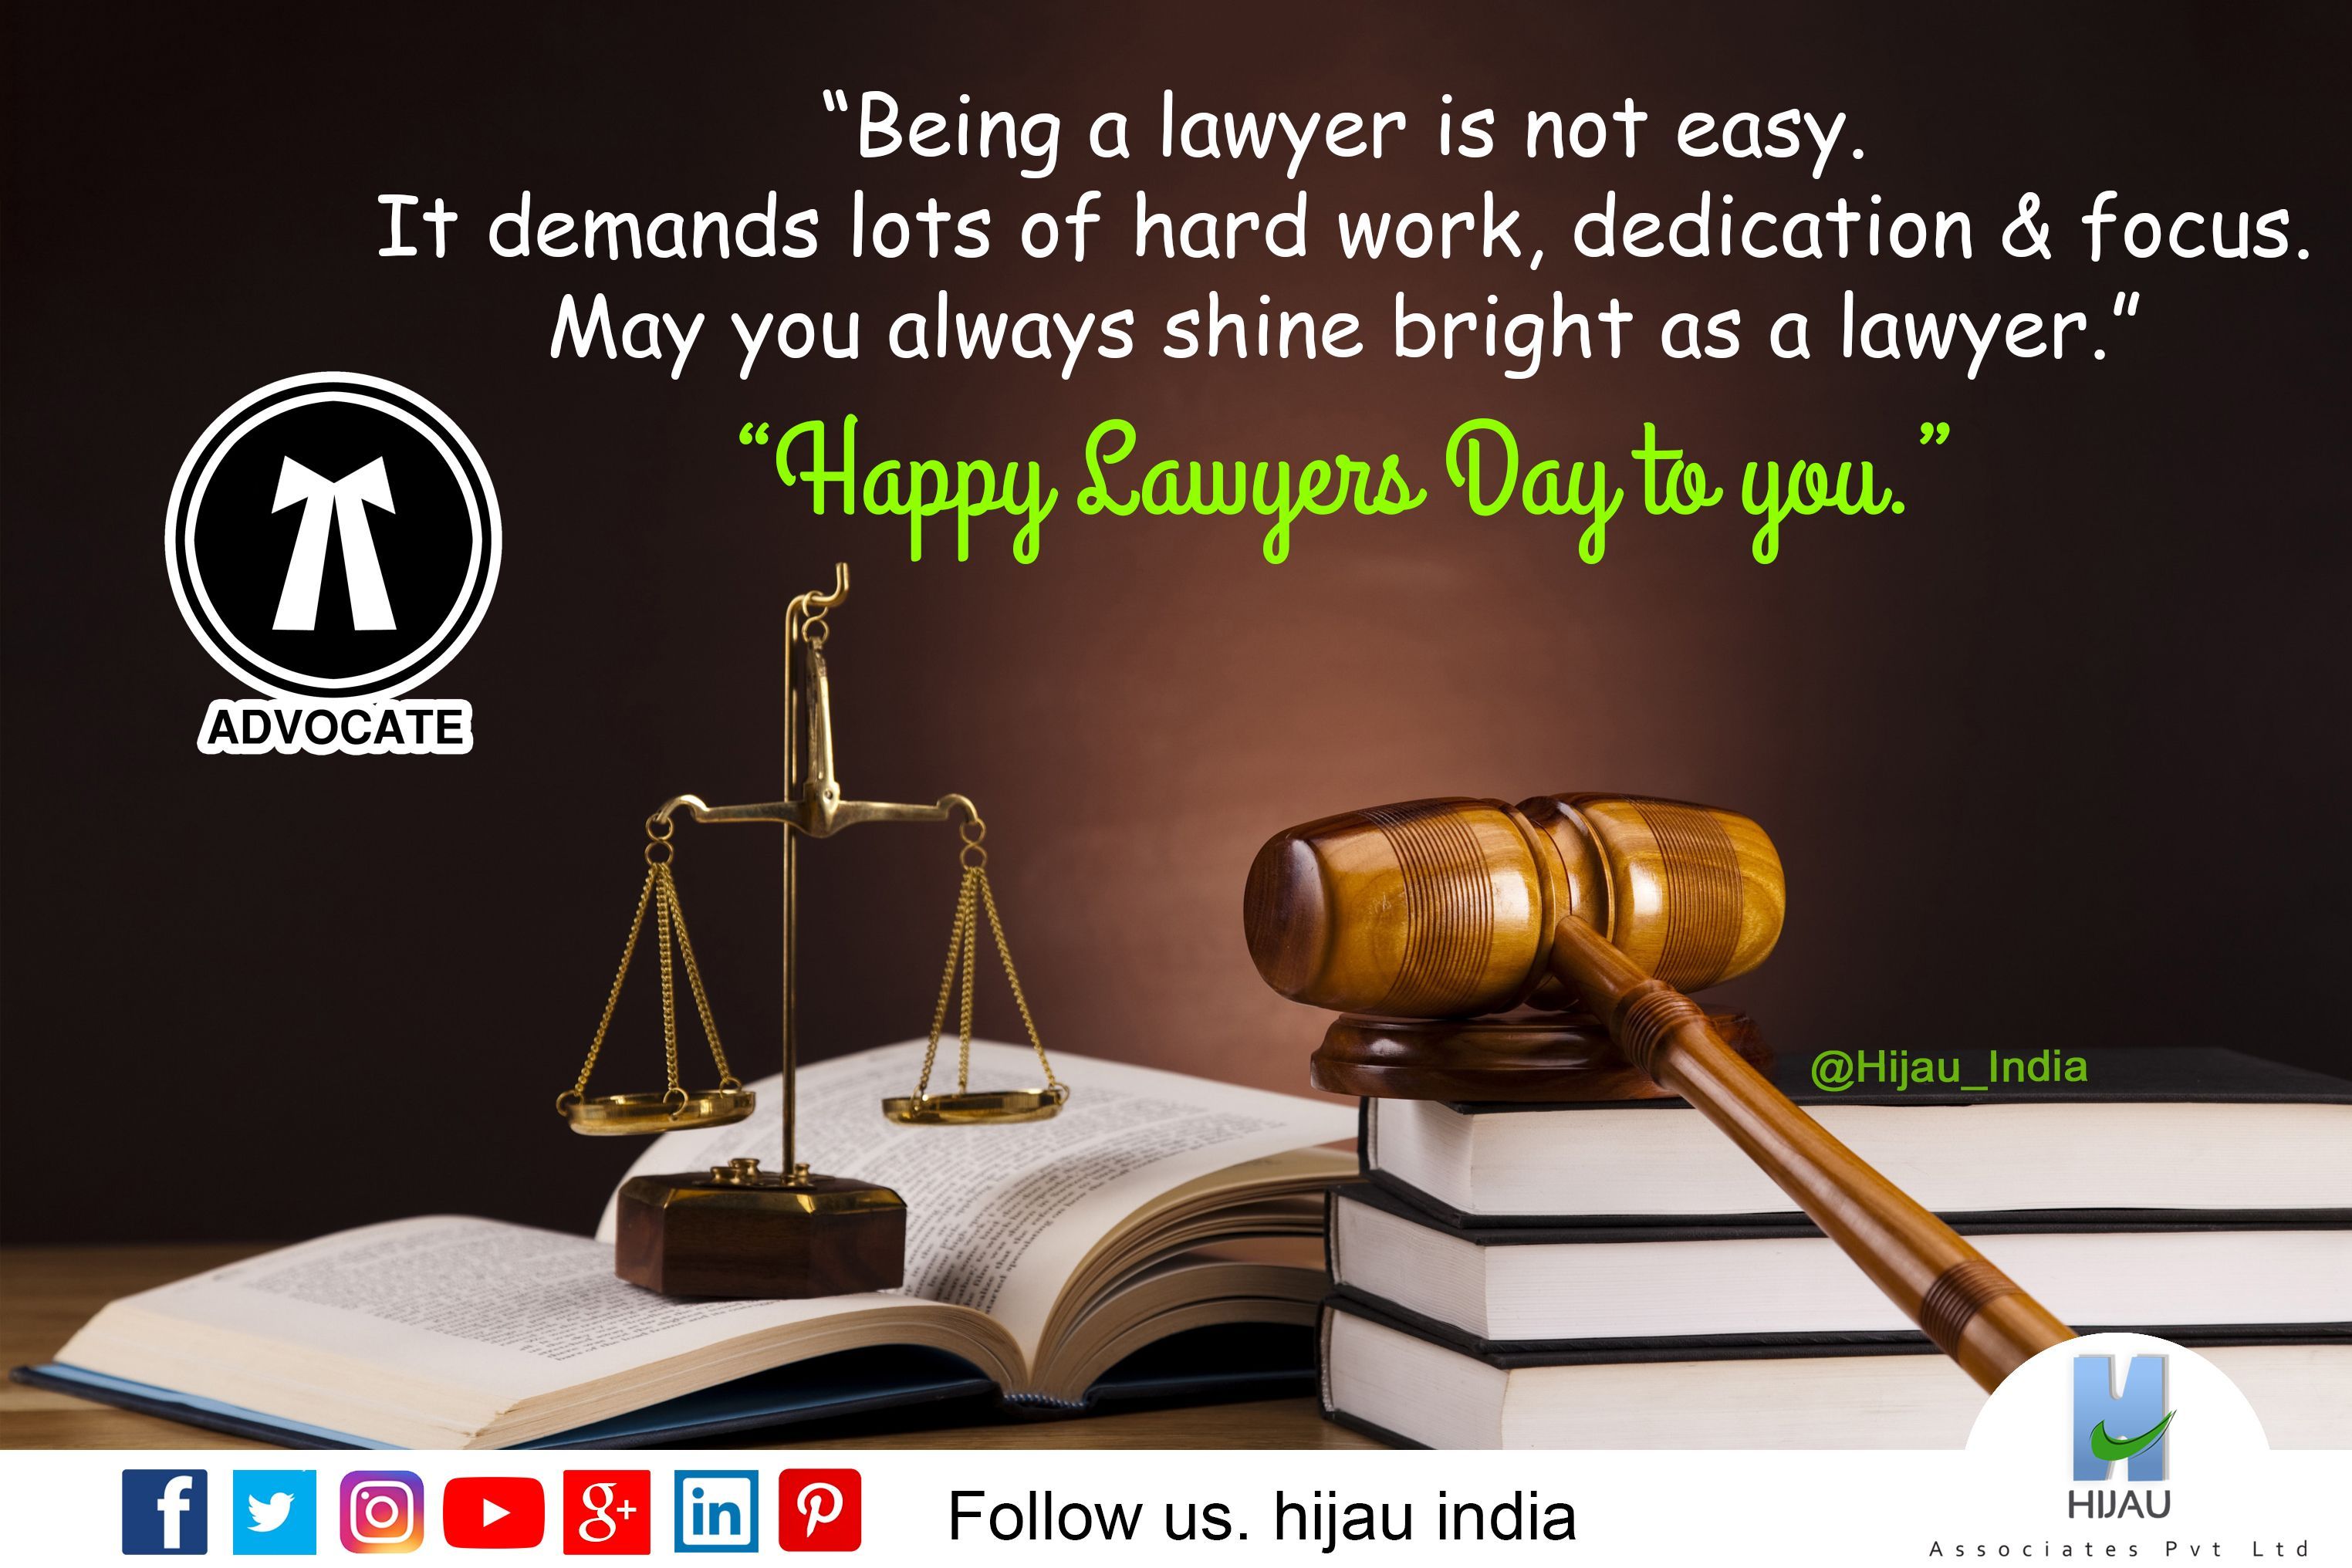 Lawyer Lawyers Day Consulting Business Business Opportunities